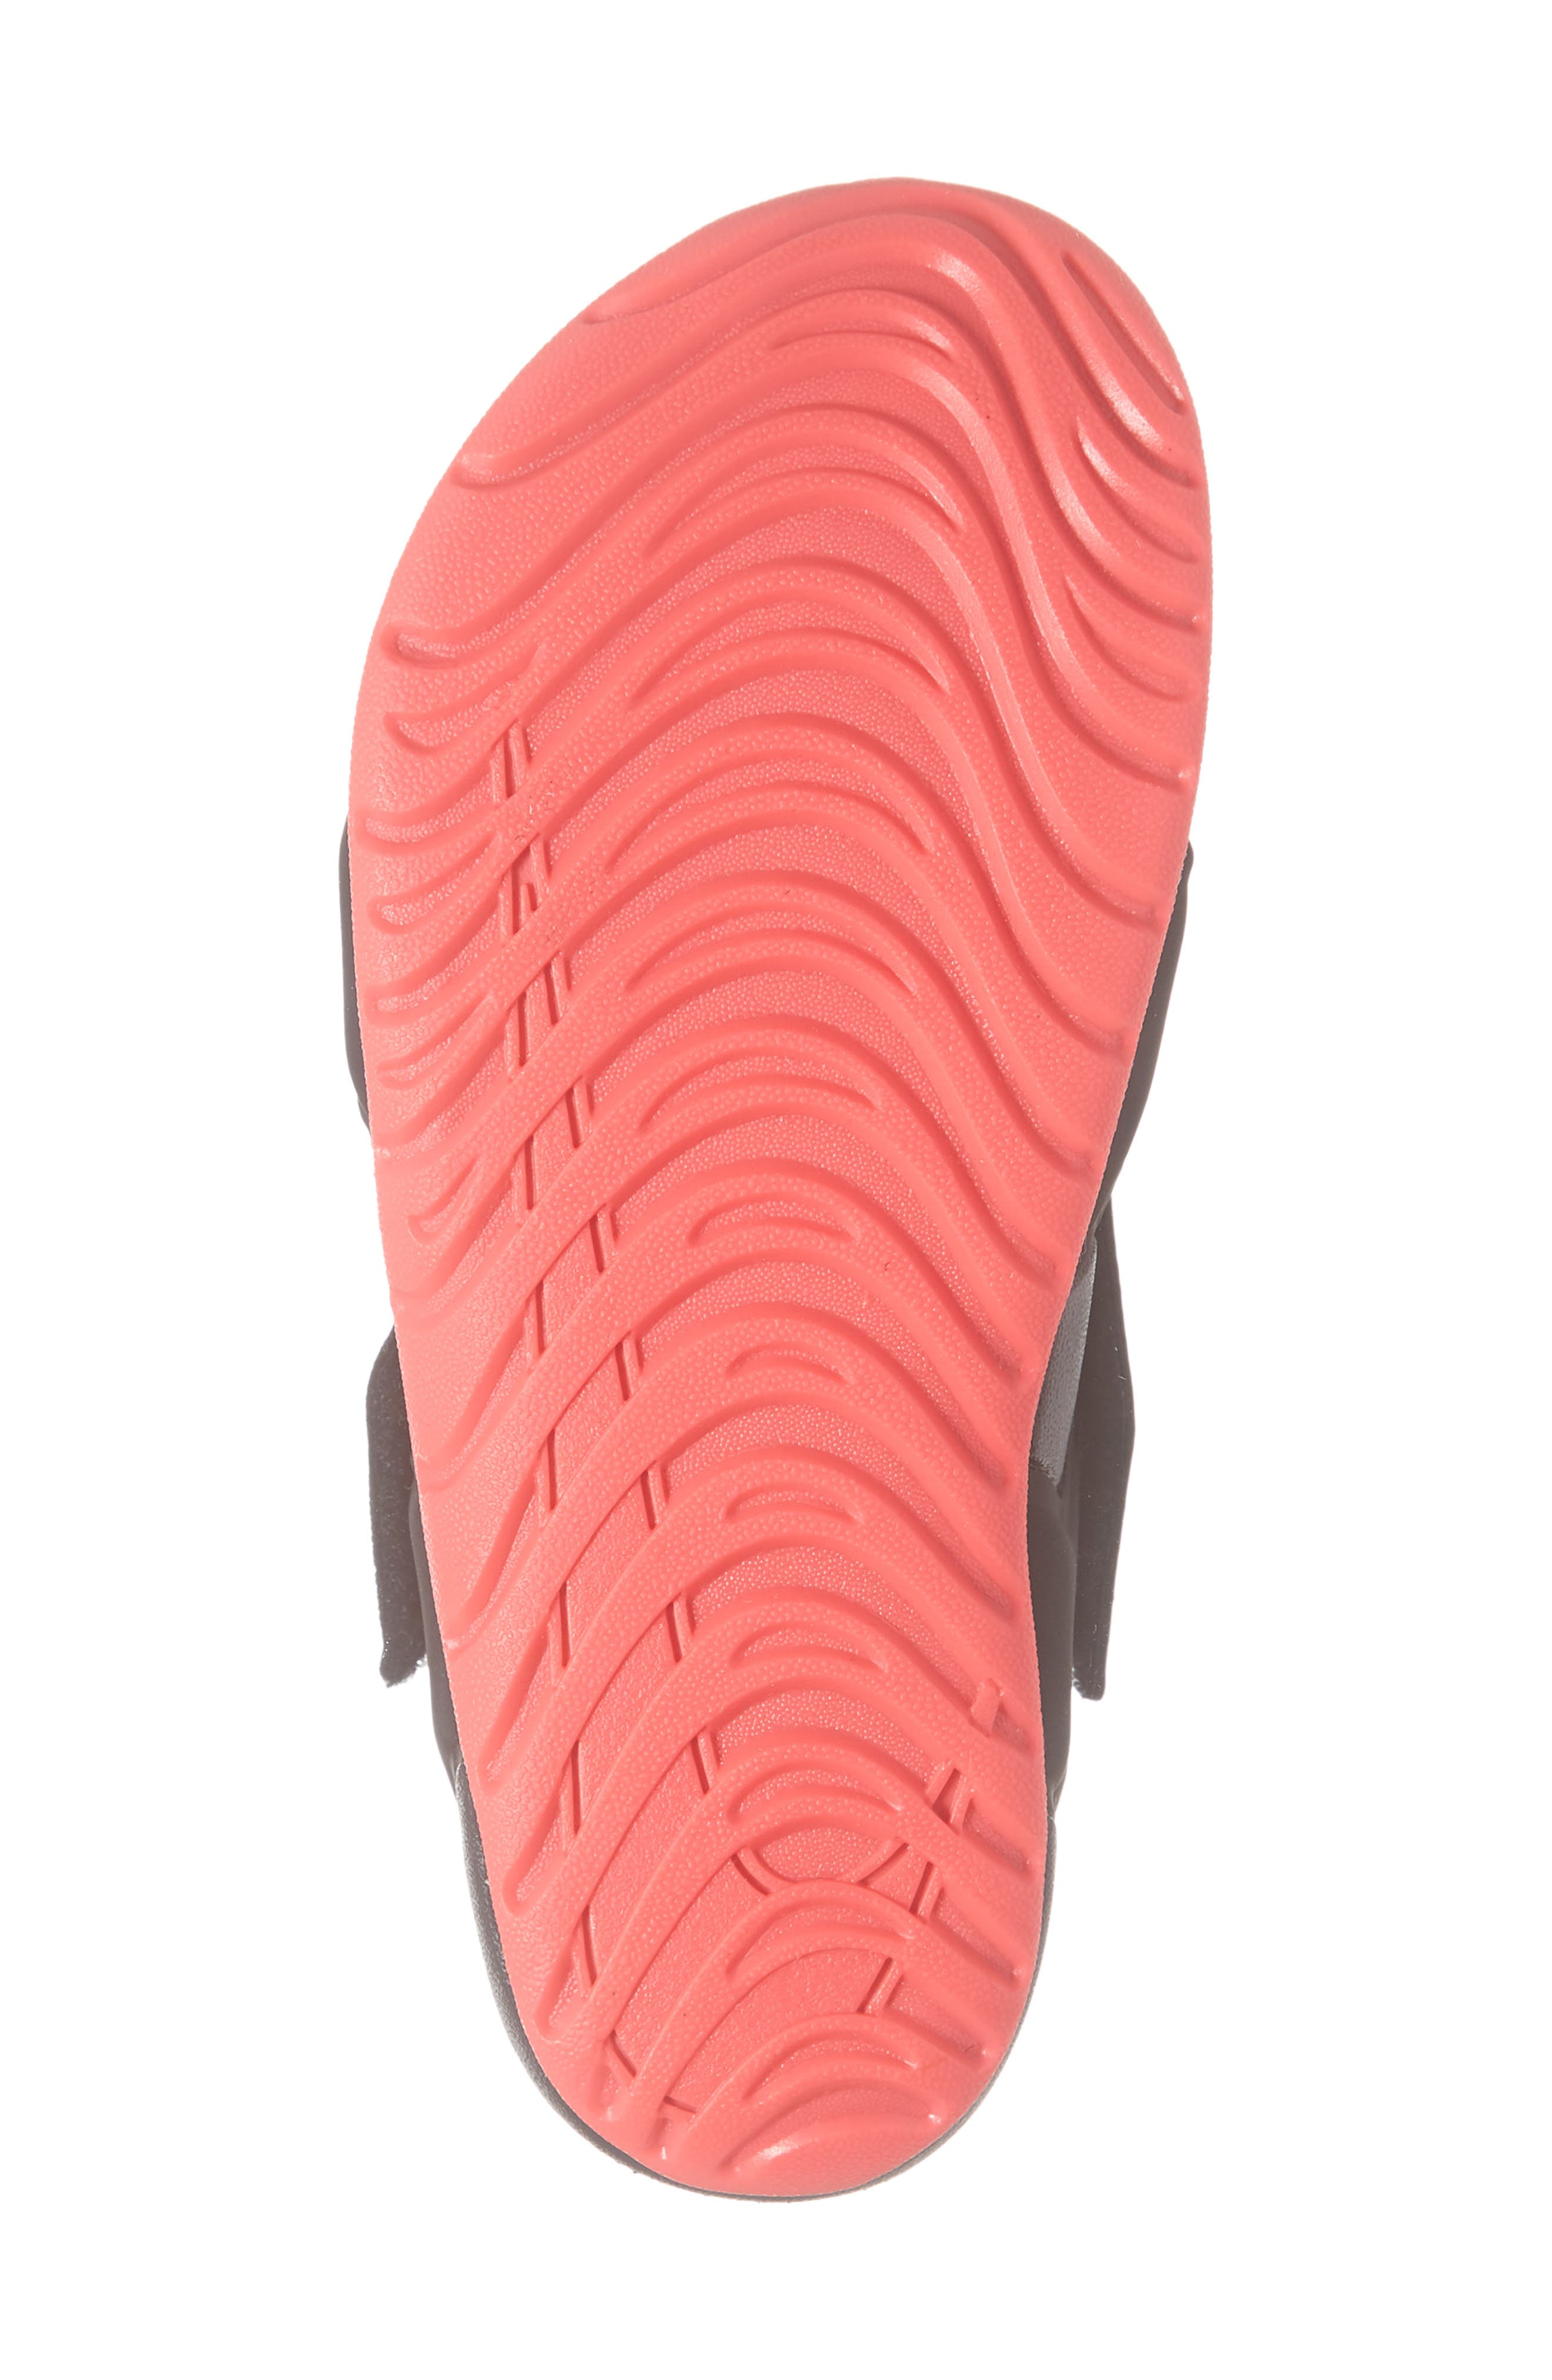 Sunray Protect 2 Sandal,                             Alternate thumbnail 6, color,                             BLACK/ RACER PINK